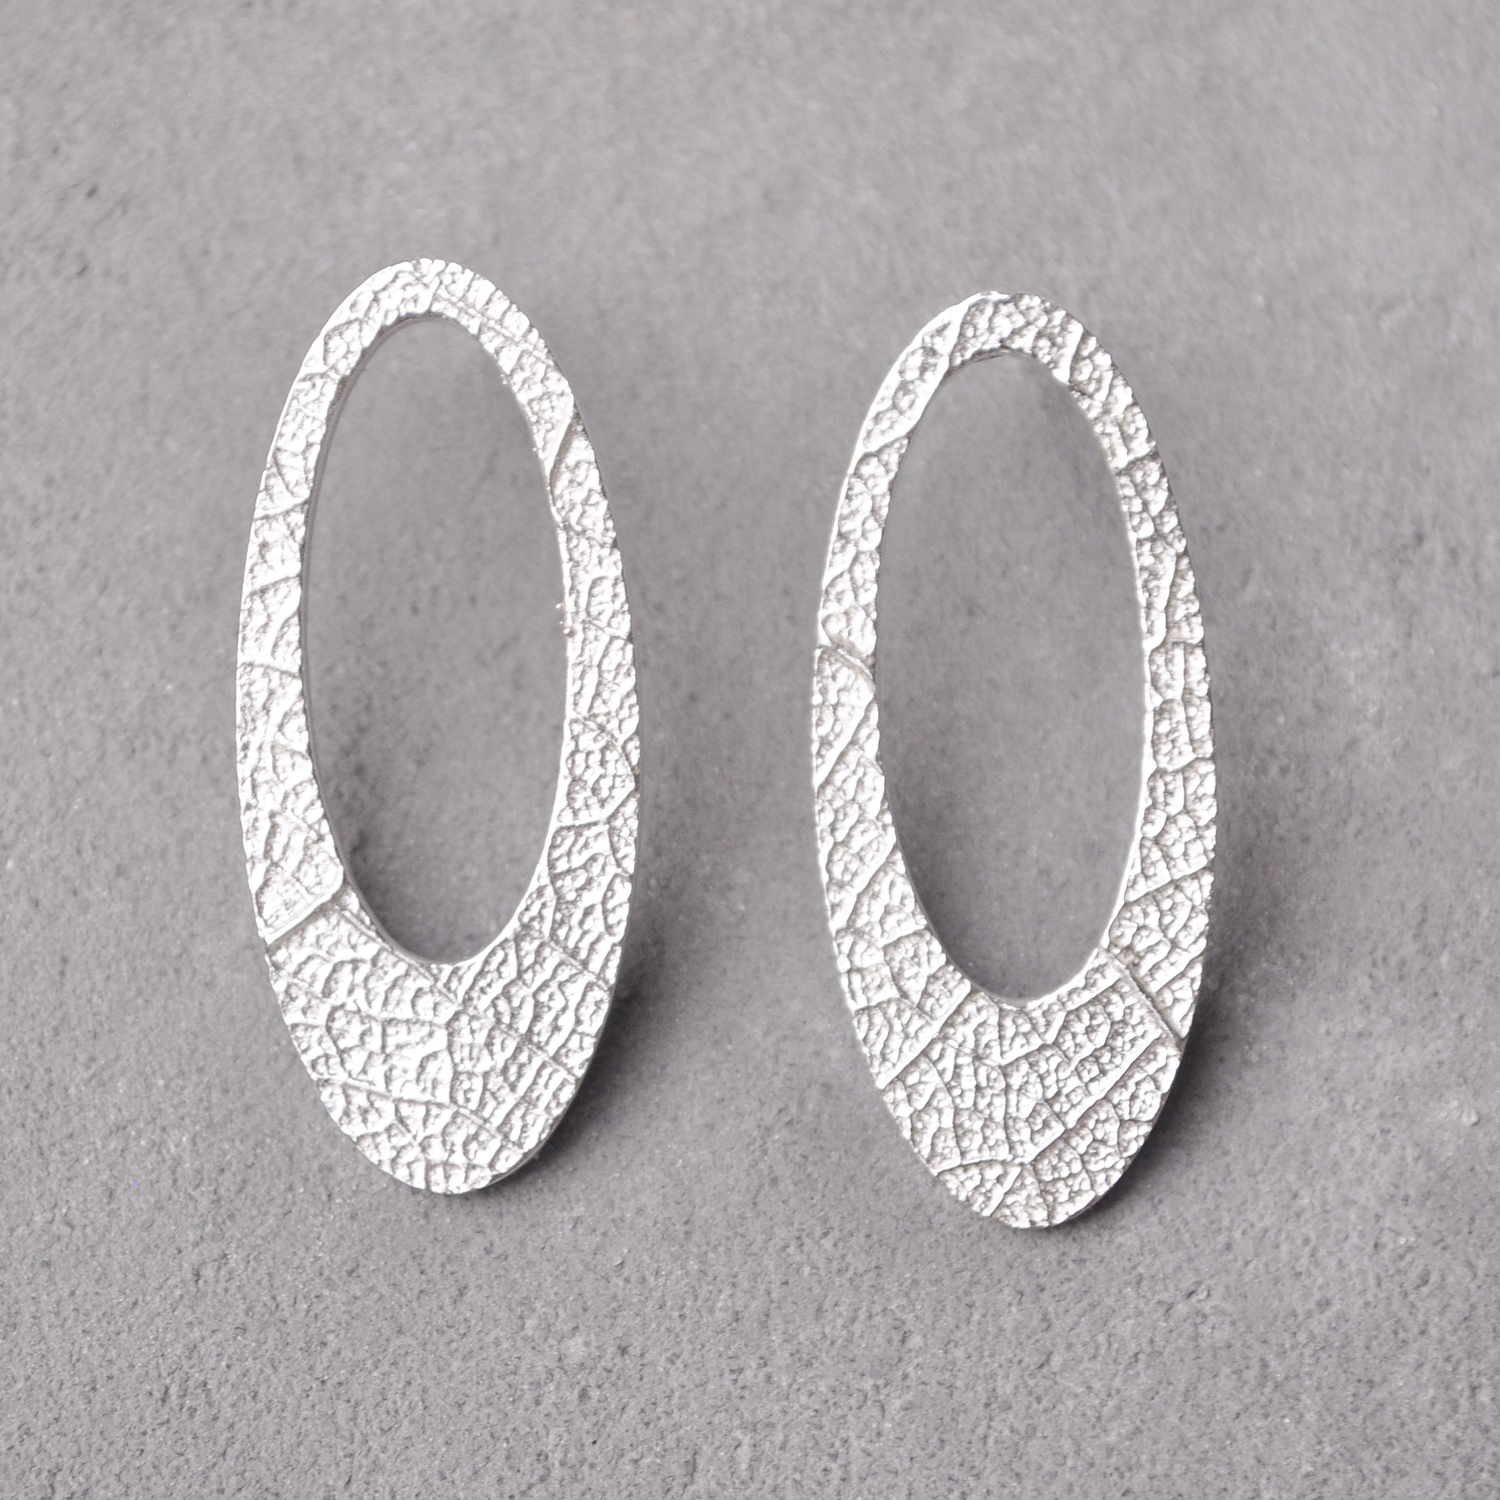 Our large hollow oval studs are 35mm in length and are available in coco and leaf textue.